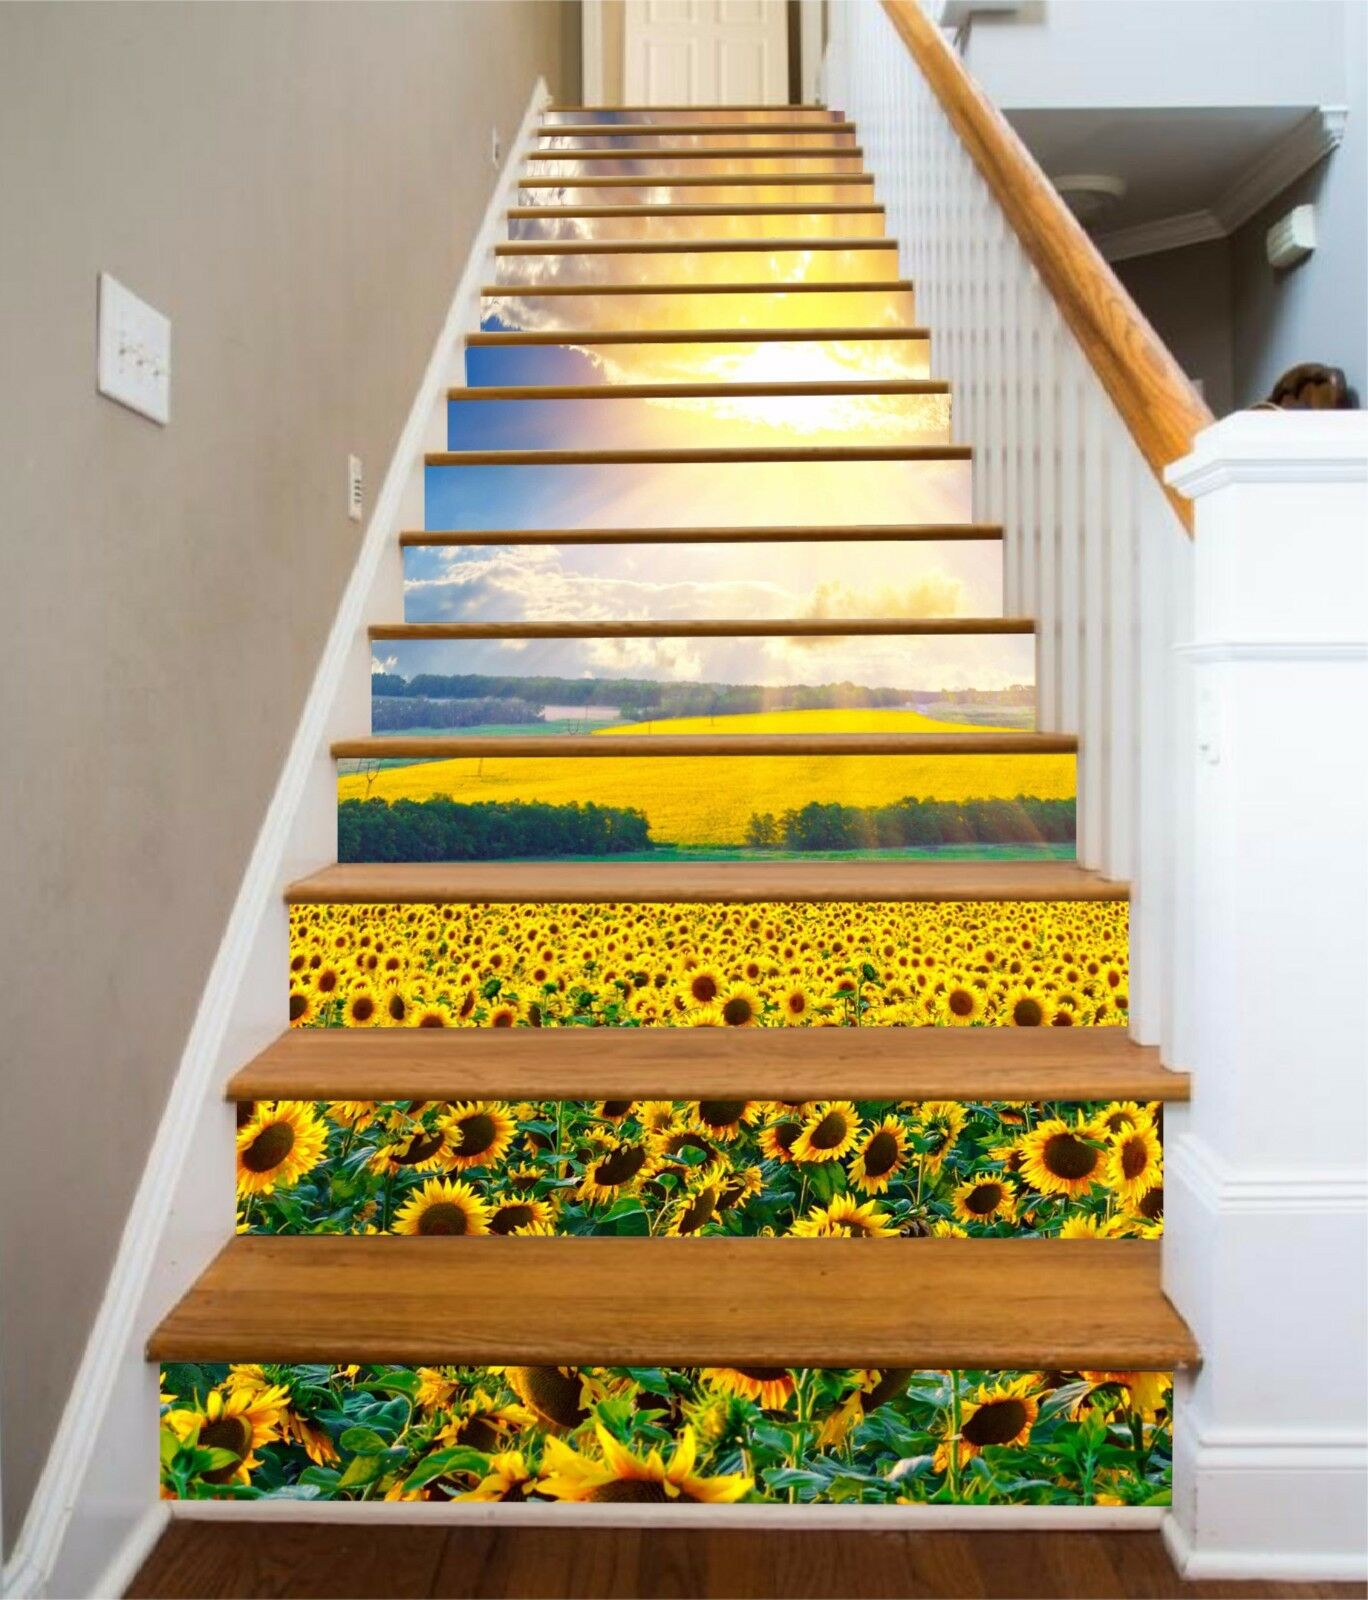 3D Sunflower Field 8Stair Risers Decoration Photo Mural Vinyl Decal WandPapier AU